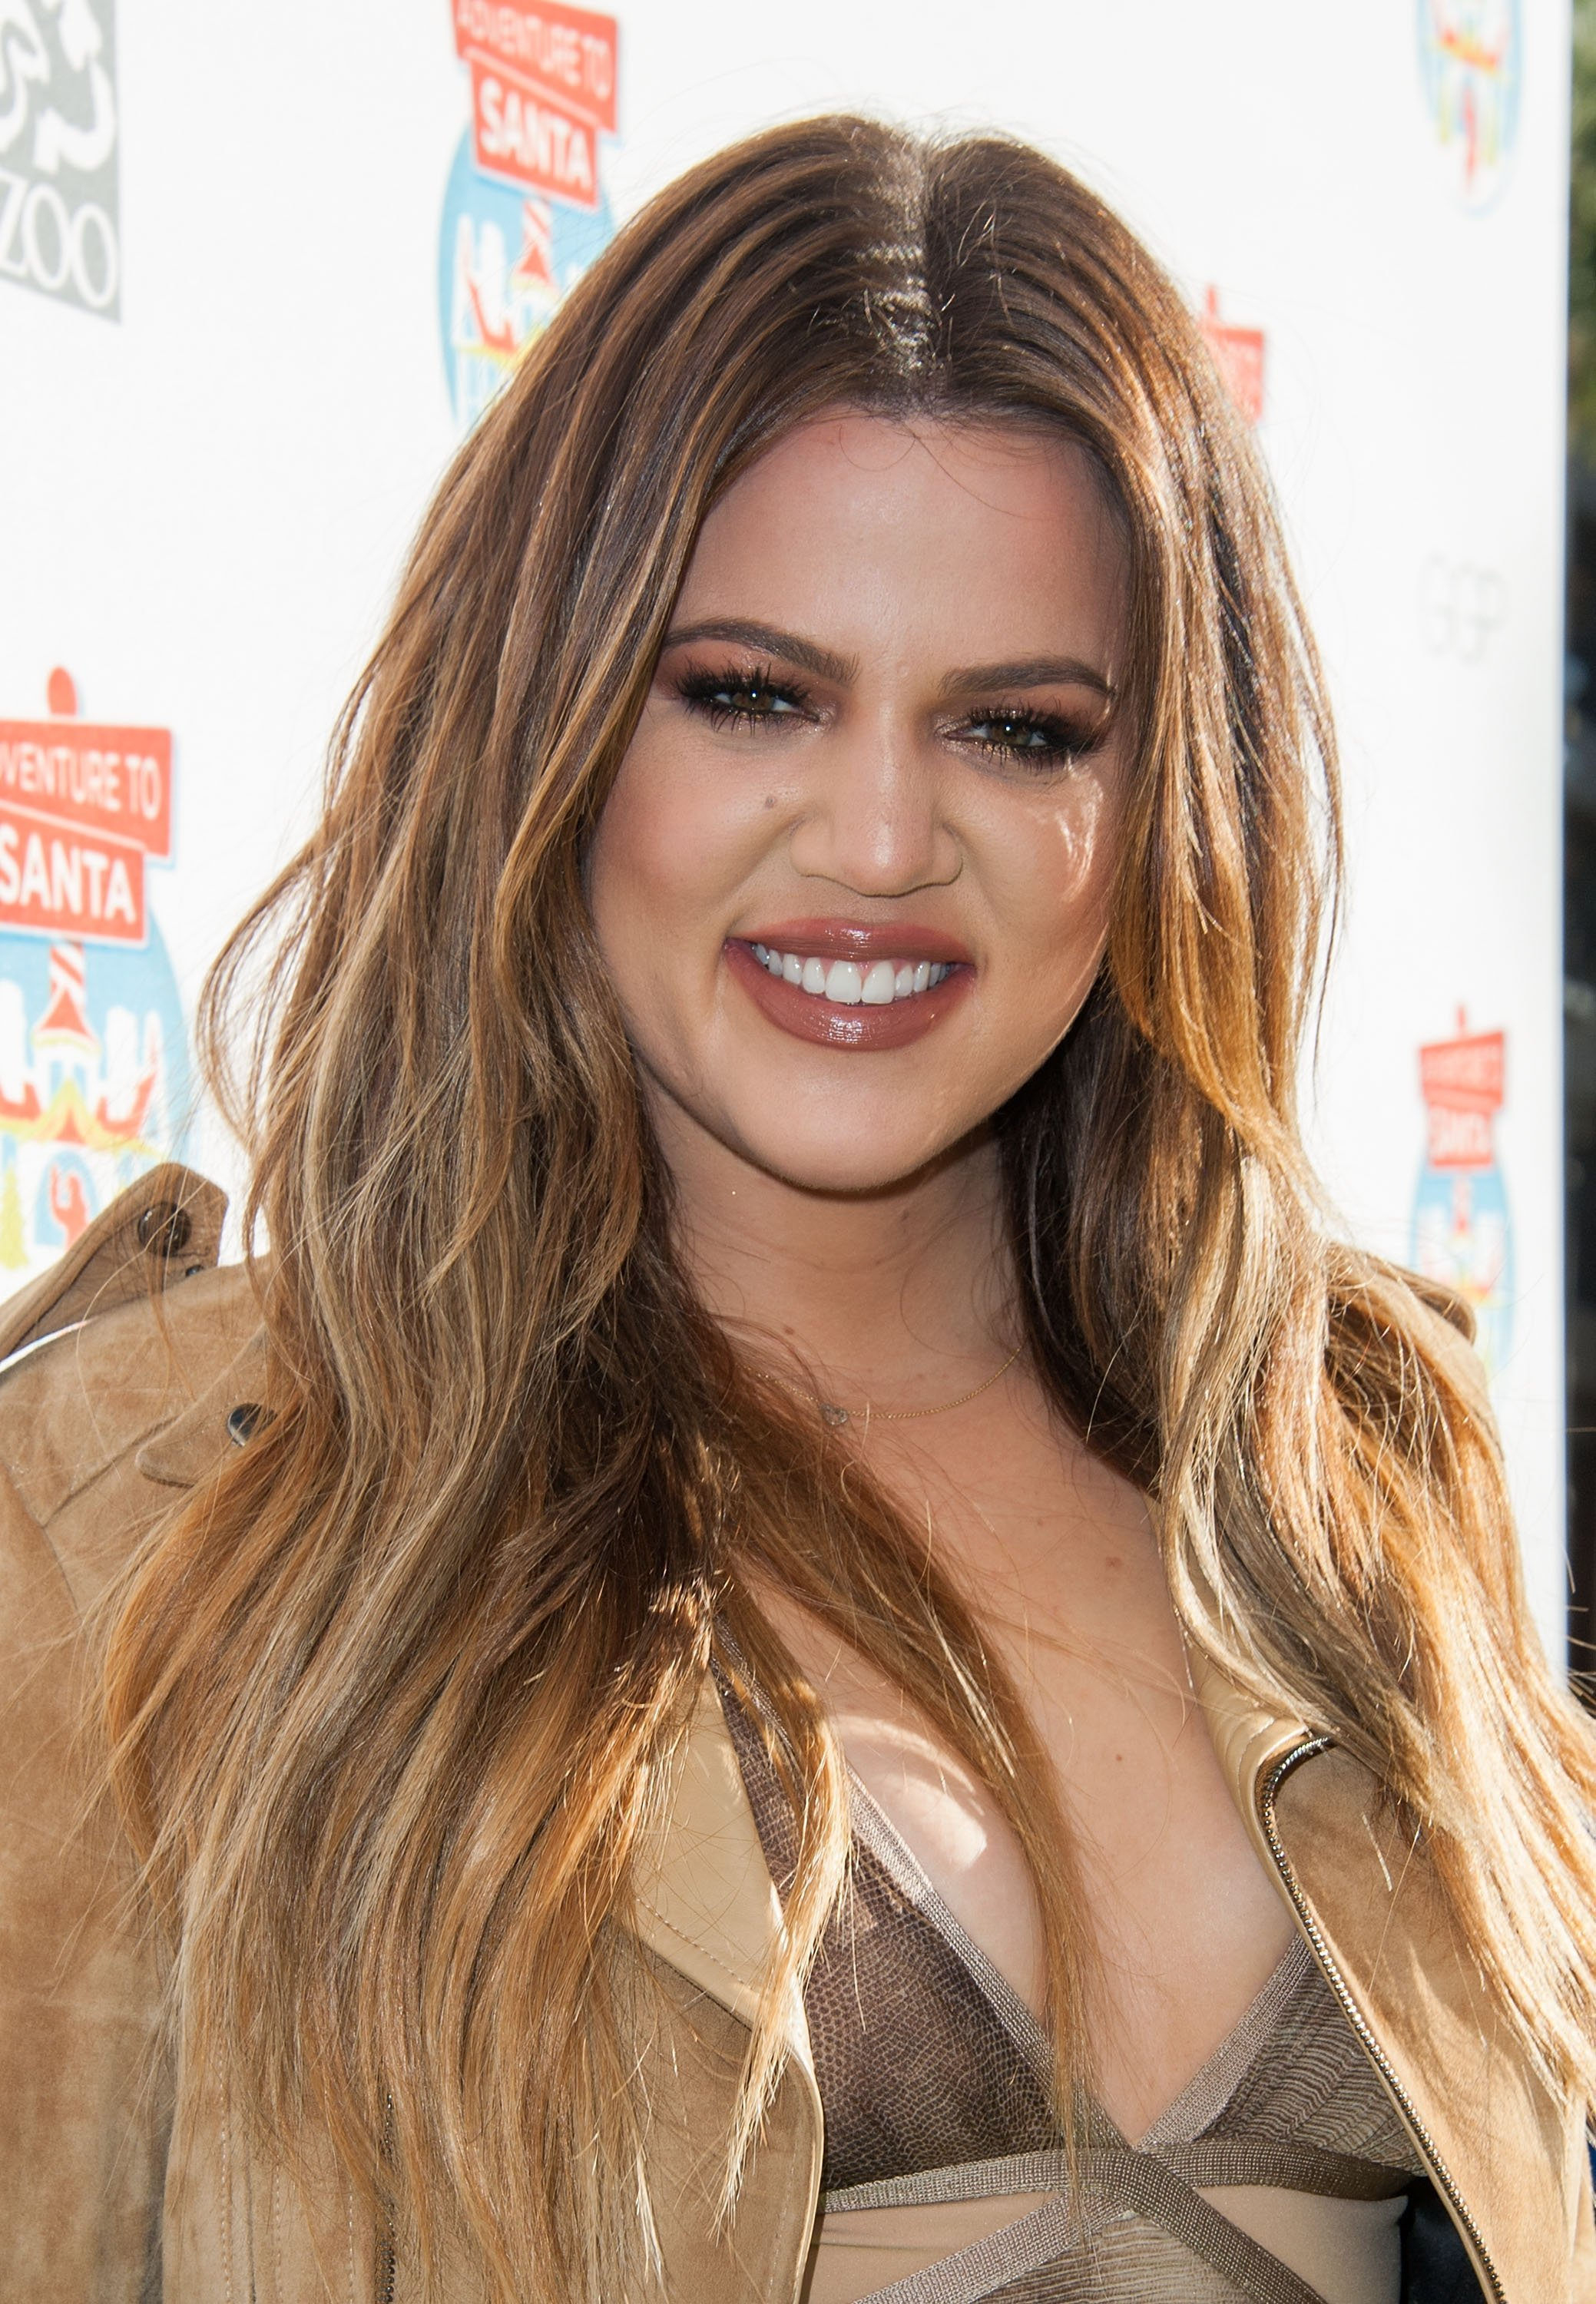 Khloe Kardashian arrives at Adventure To Santa A DreamWorks DreamPlace Santa Adventure on November 6, 2014. | Source: Getty Images